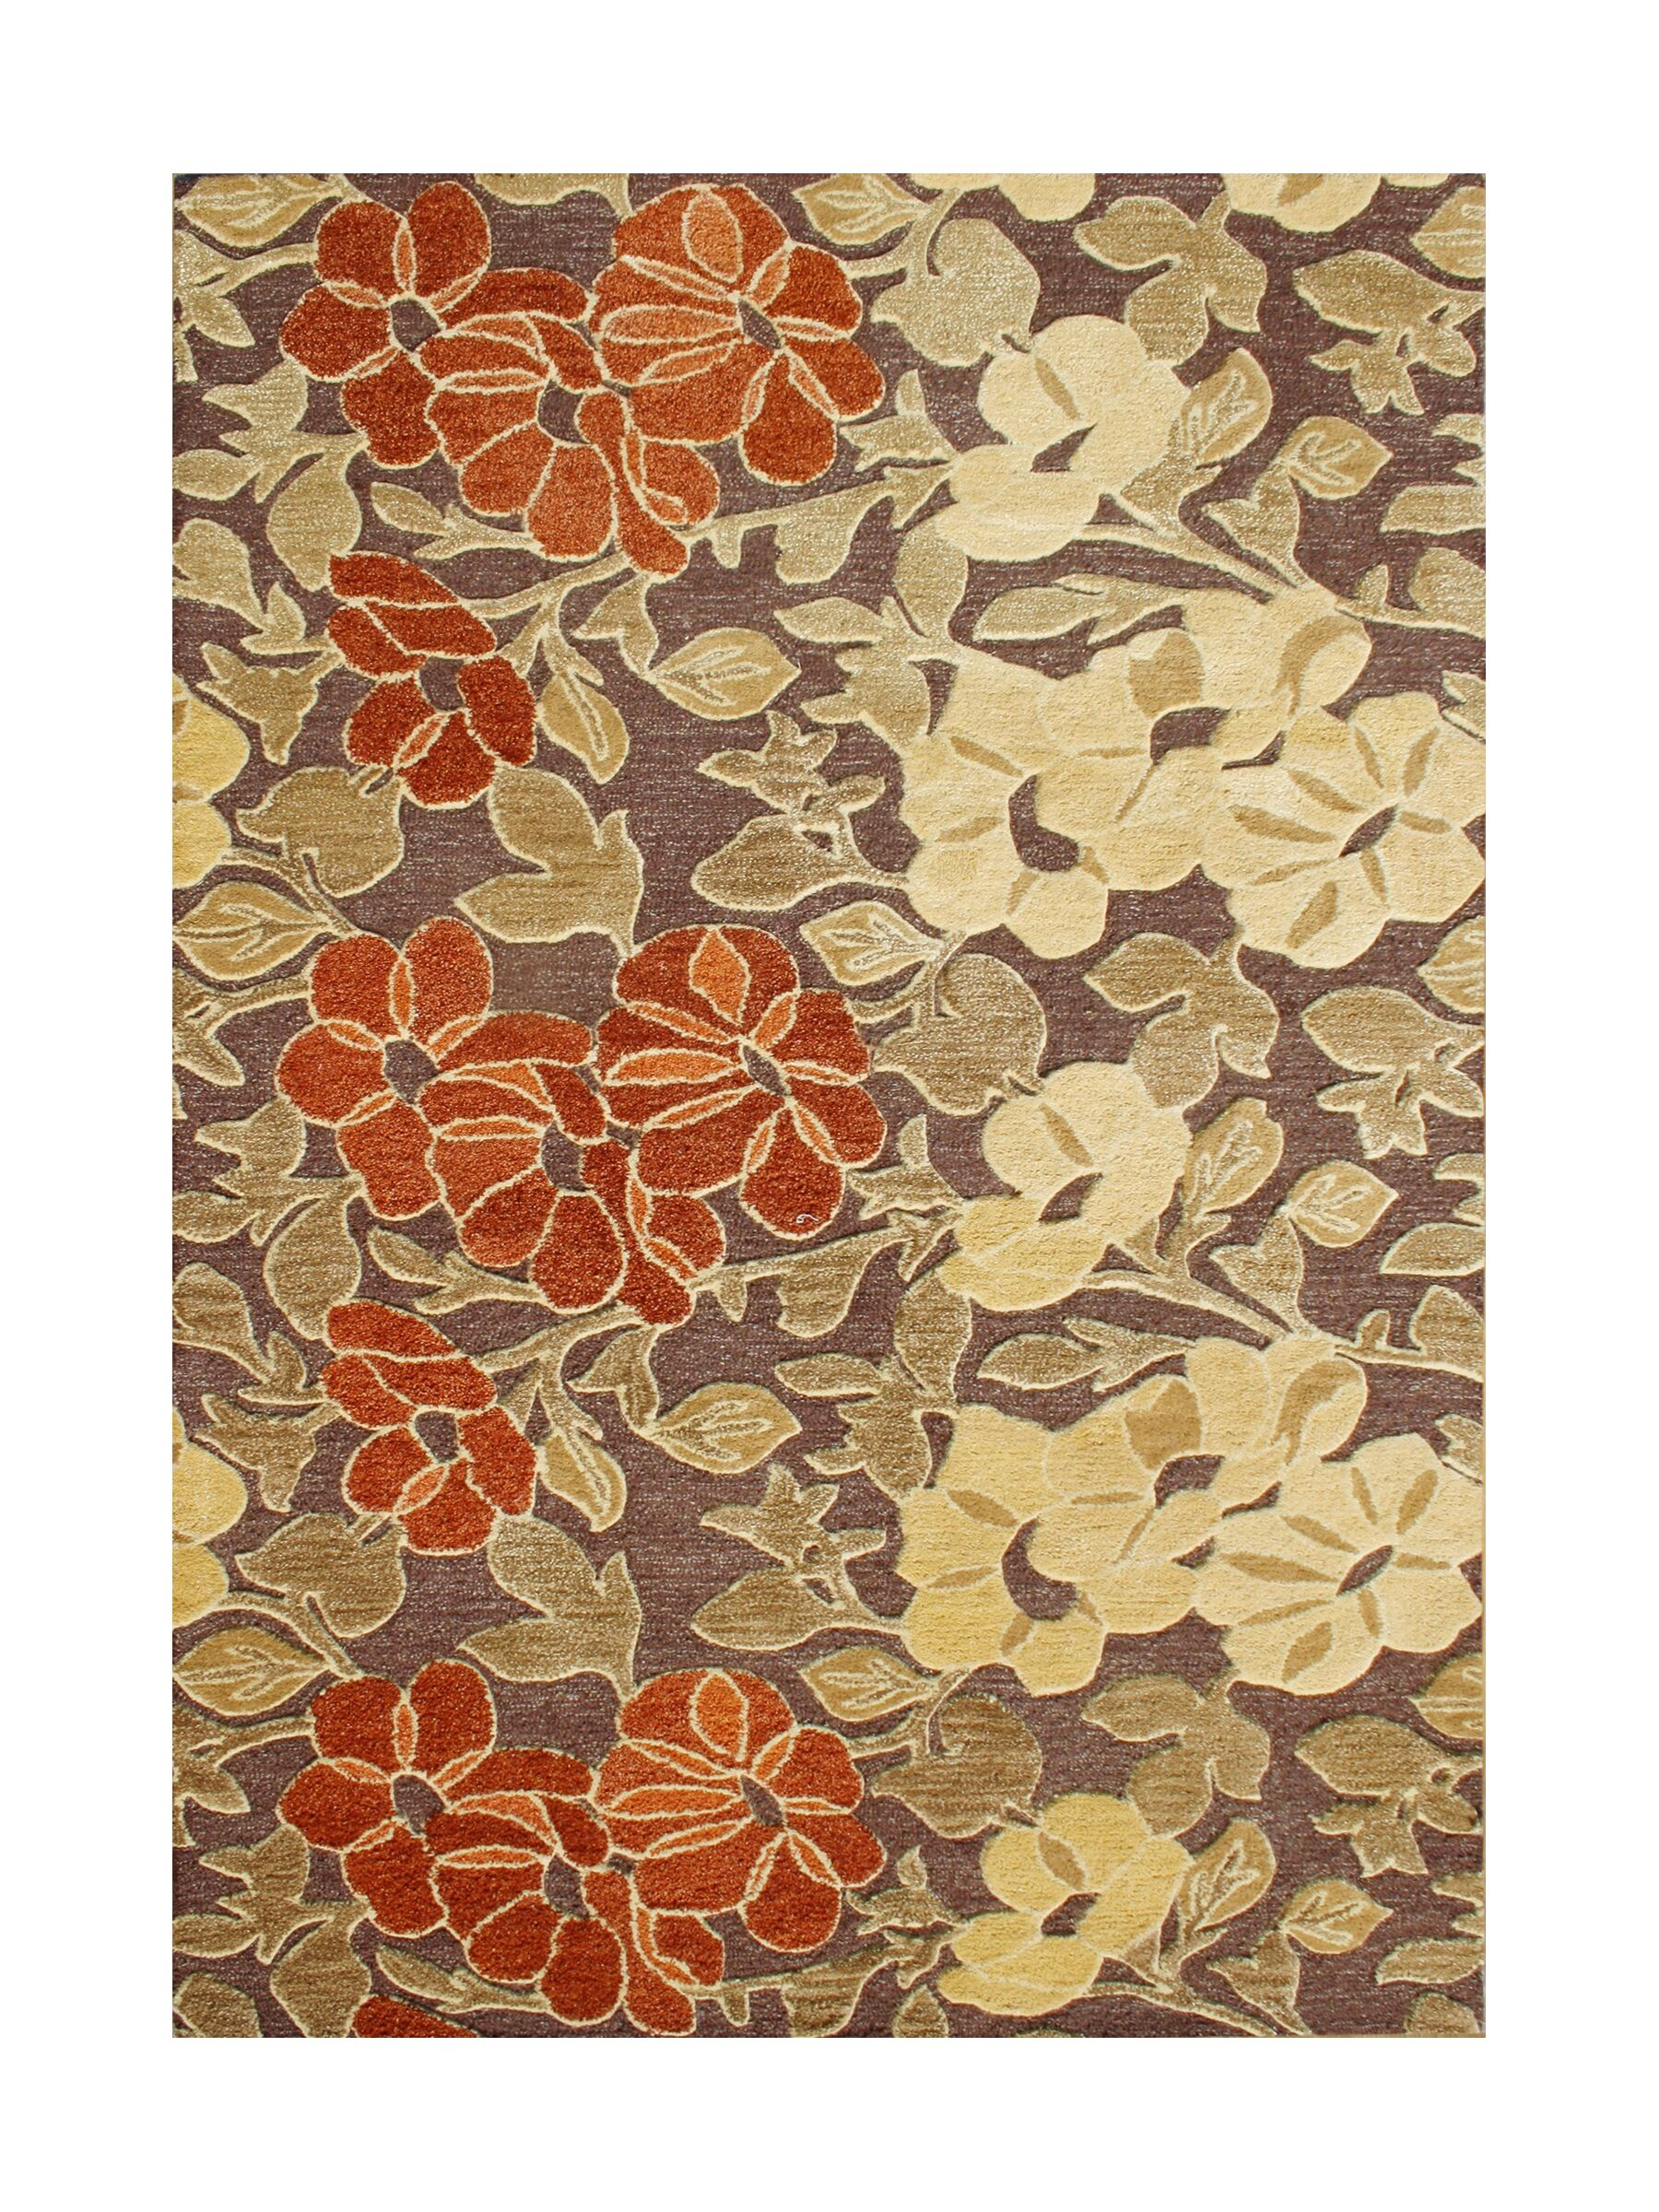 Hernan Hand-Tufted Tobacco Brown Area Rug Rug Size: 9' x 12'